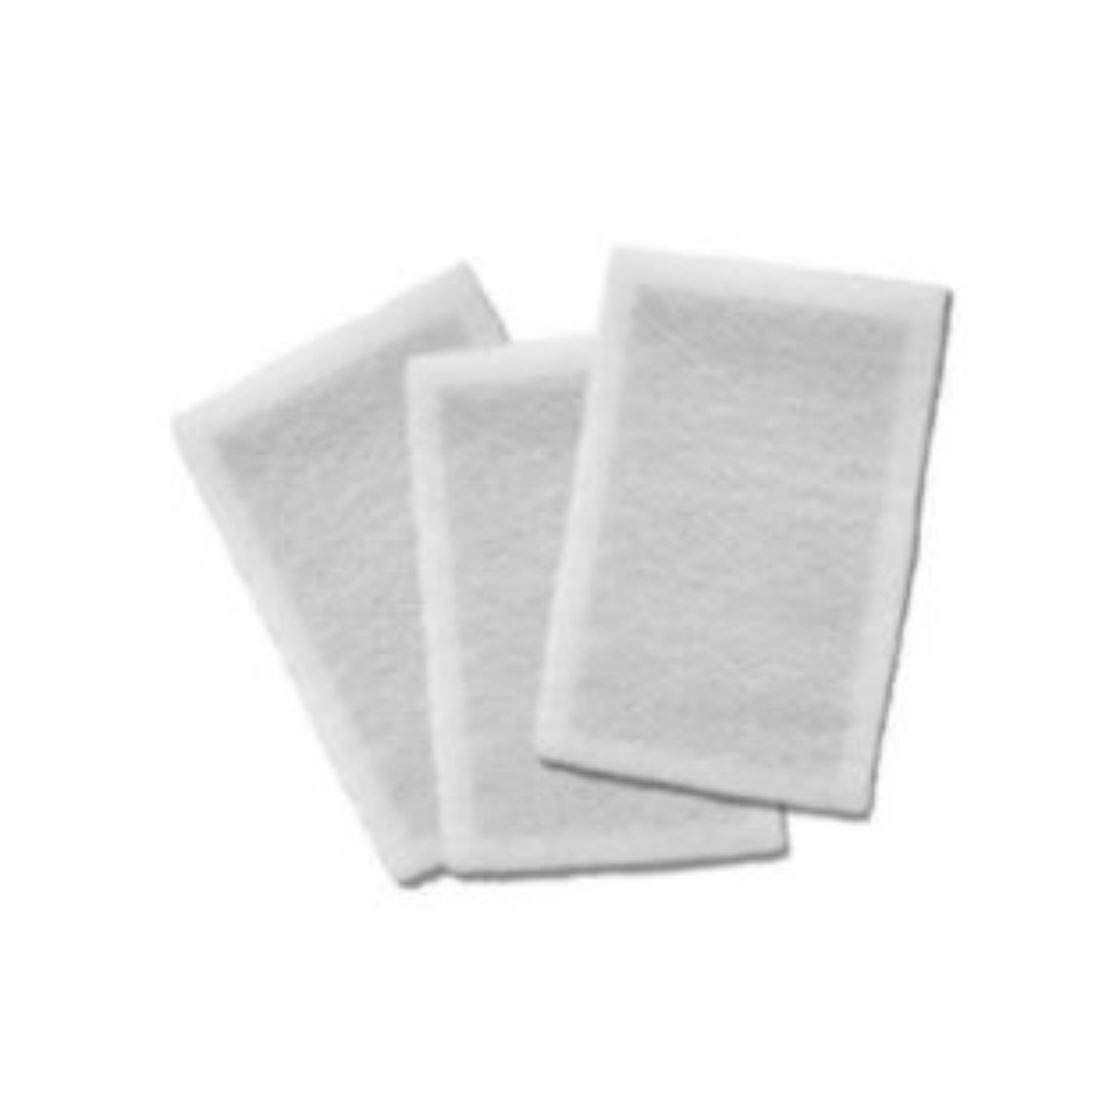 24 x 24 x 1 - Natures Home Micro Power Guard Air Cleaner Replacement Filter Pads, (3) Pack White by Dynamic-Sales-HVAC com (Image #1)